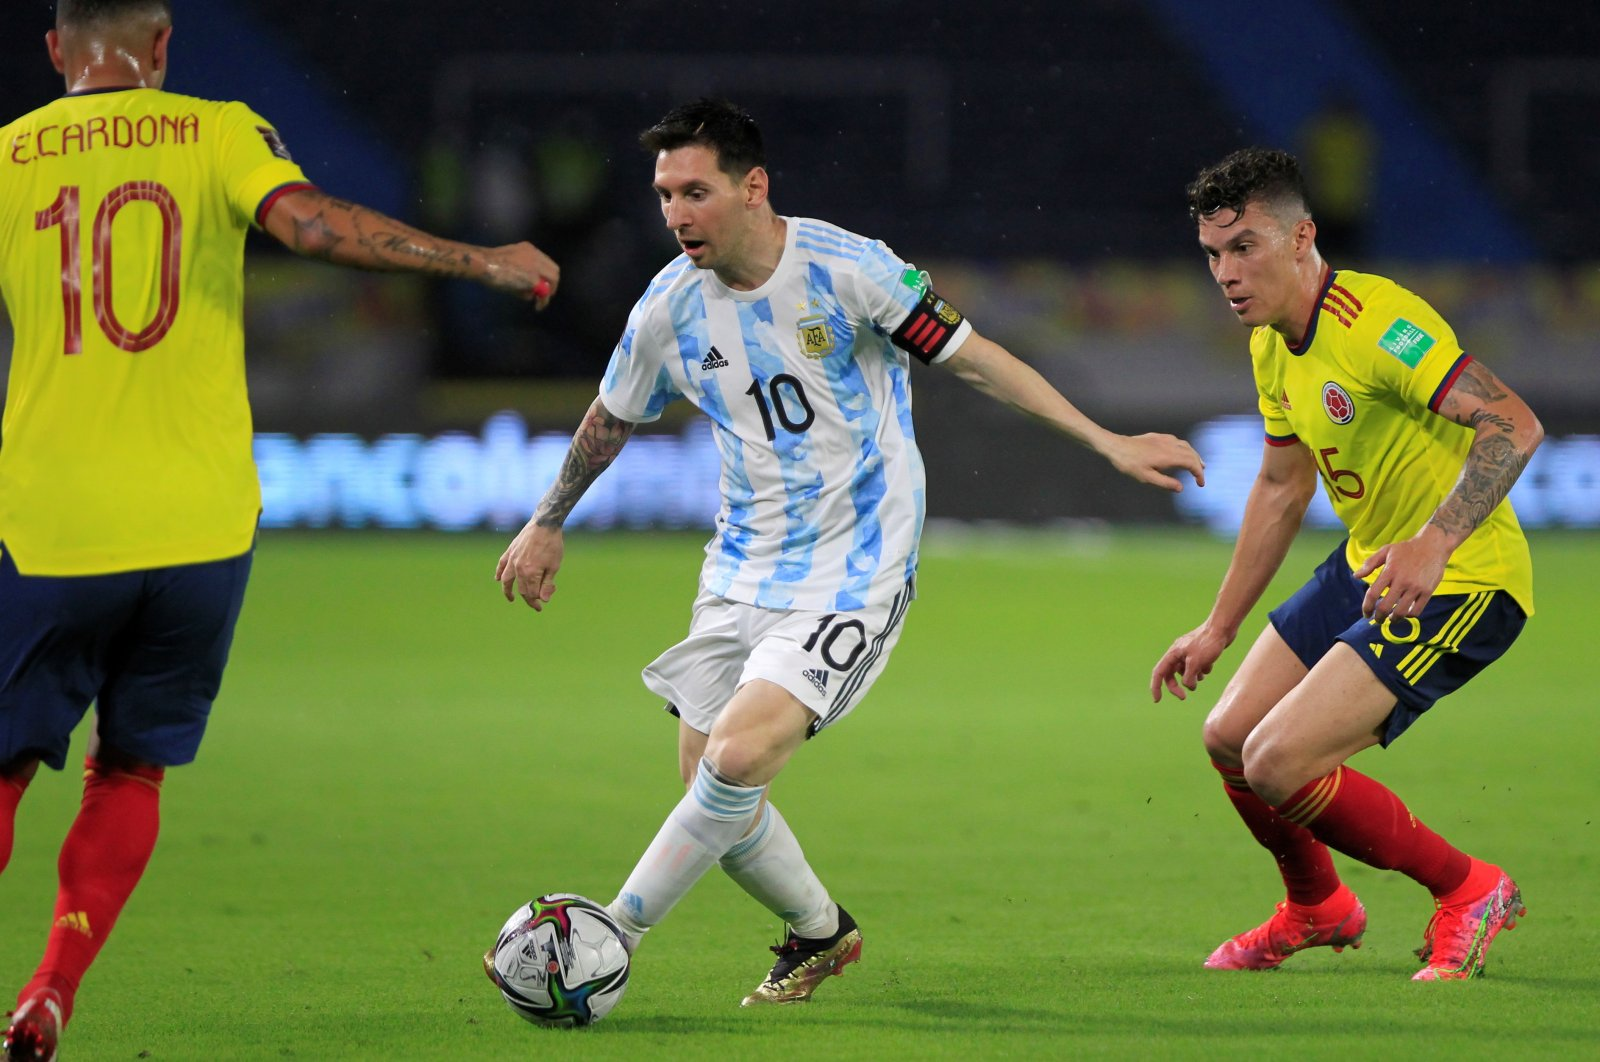 Argentina's Lionel Messi (C) in action against Mateus Uribe (R) of Colombia during a South American World Cup Qualifiers match, at the Metropolitano Stadium, Barranquilla, Colombia, June 8, 2021. (EPA Photo)